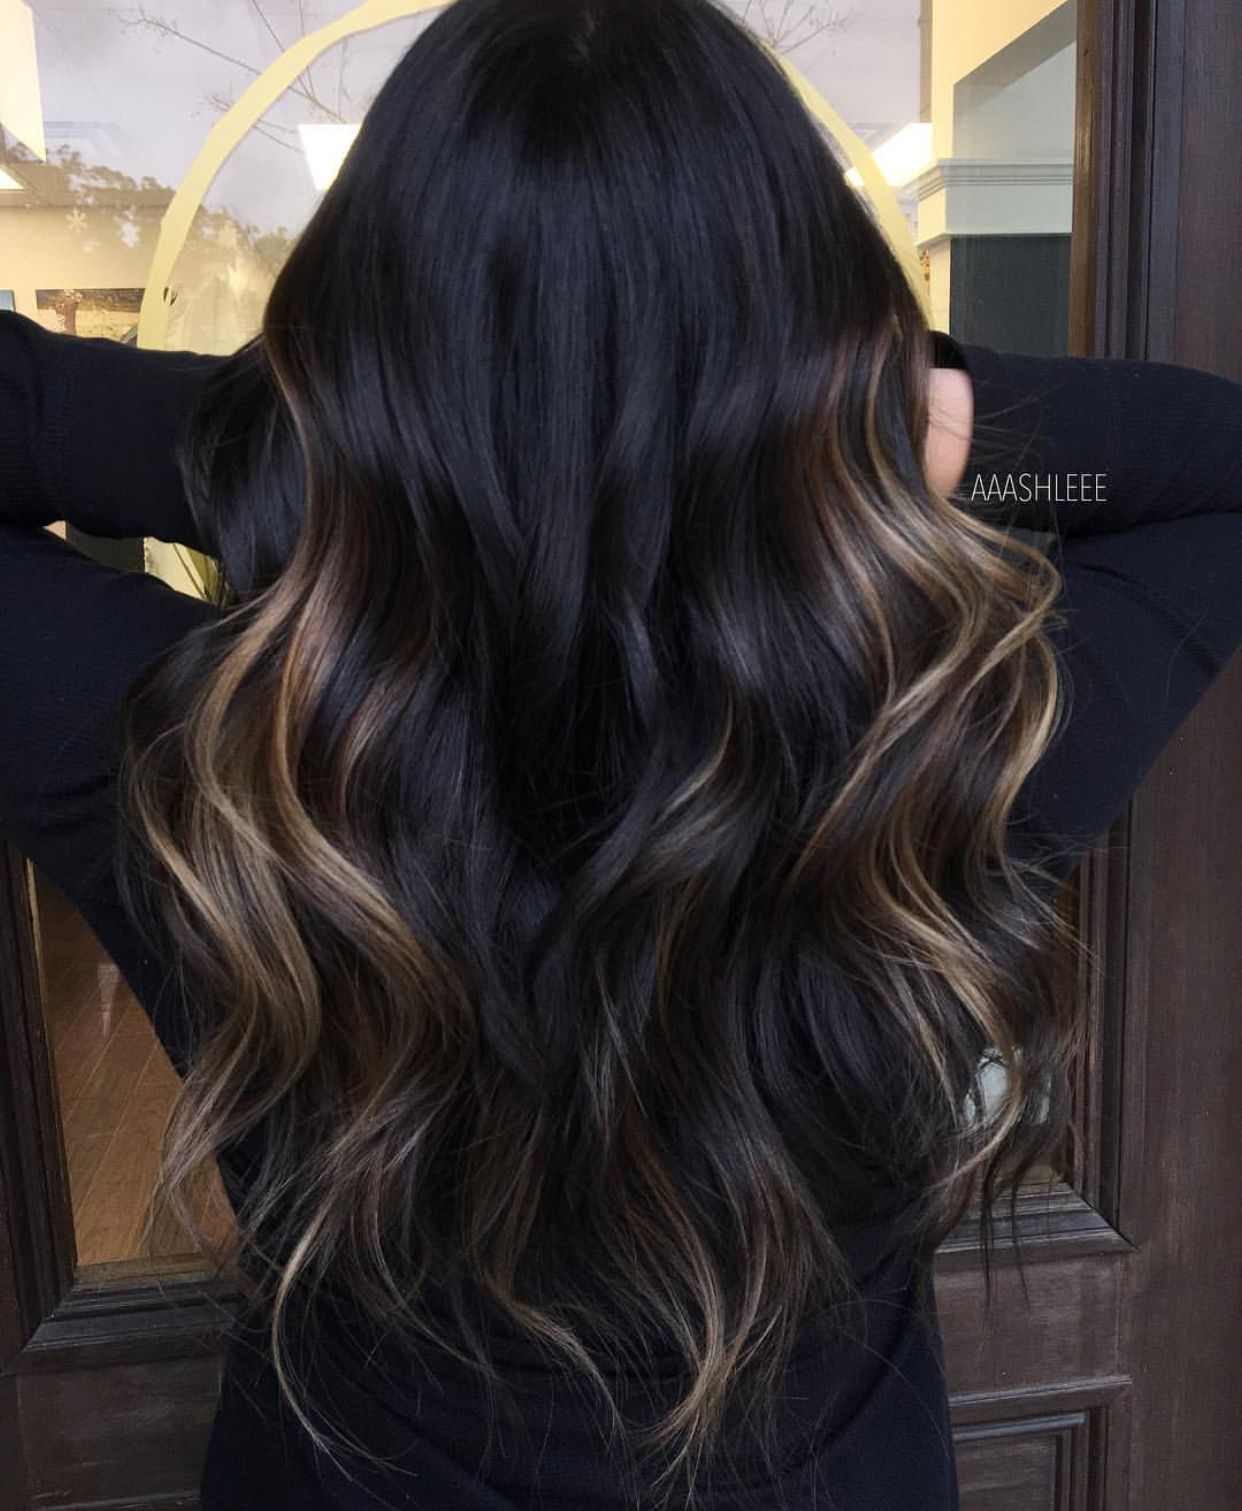 Pin By Ashley Shanell On 3 Hair Color Unique Long Hair Color Black Hair Balayage